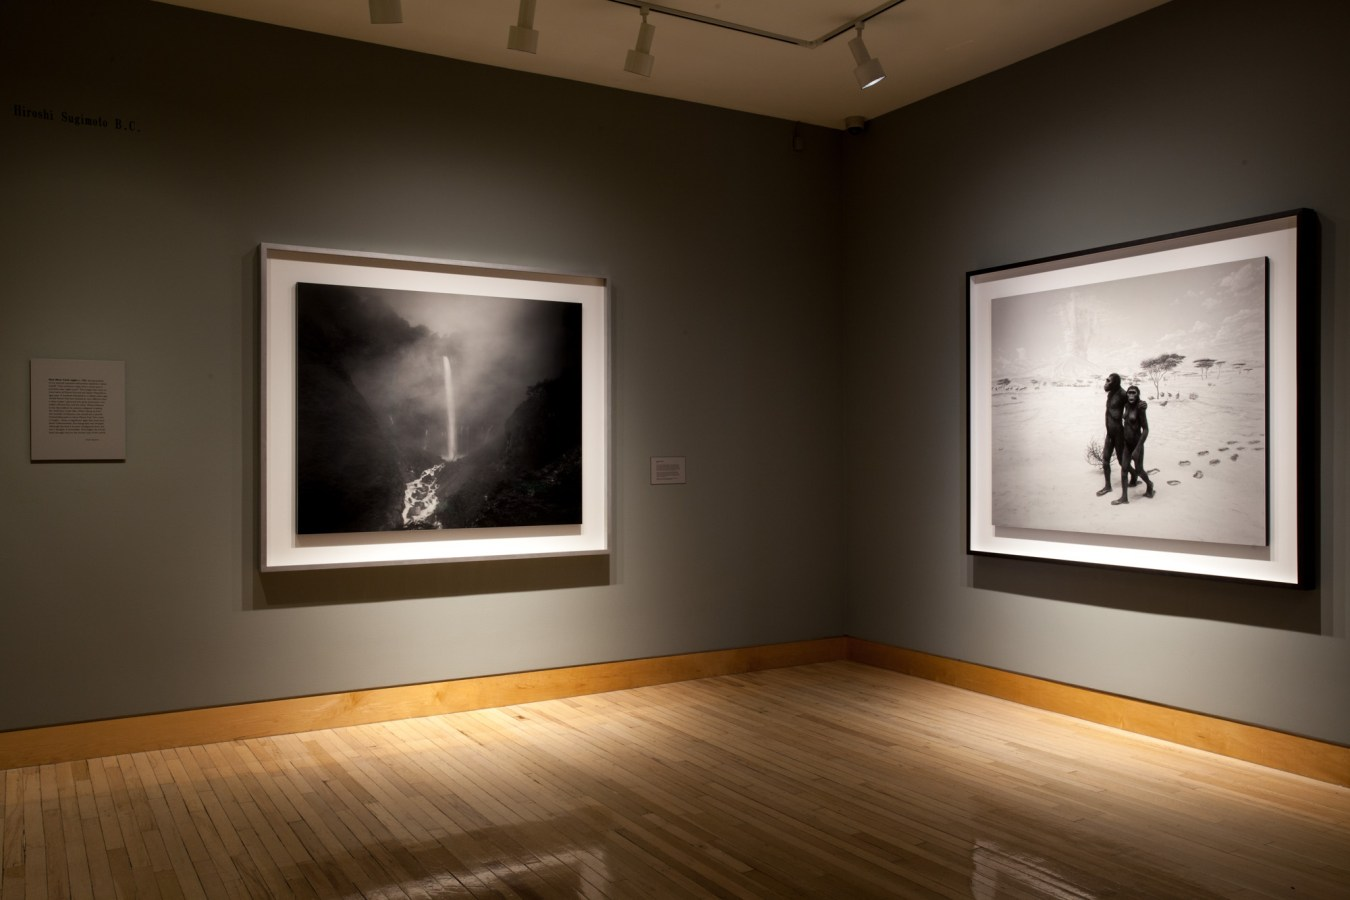 Installation photograph of framed prints on gallery walls